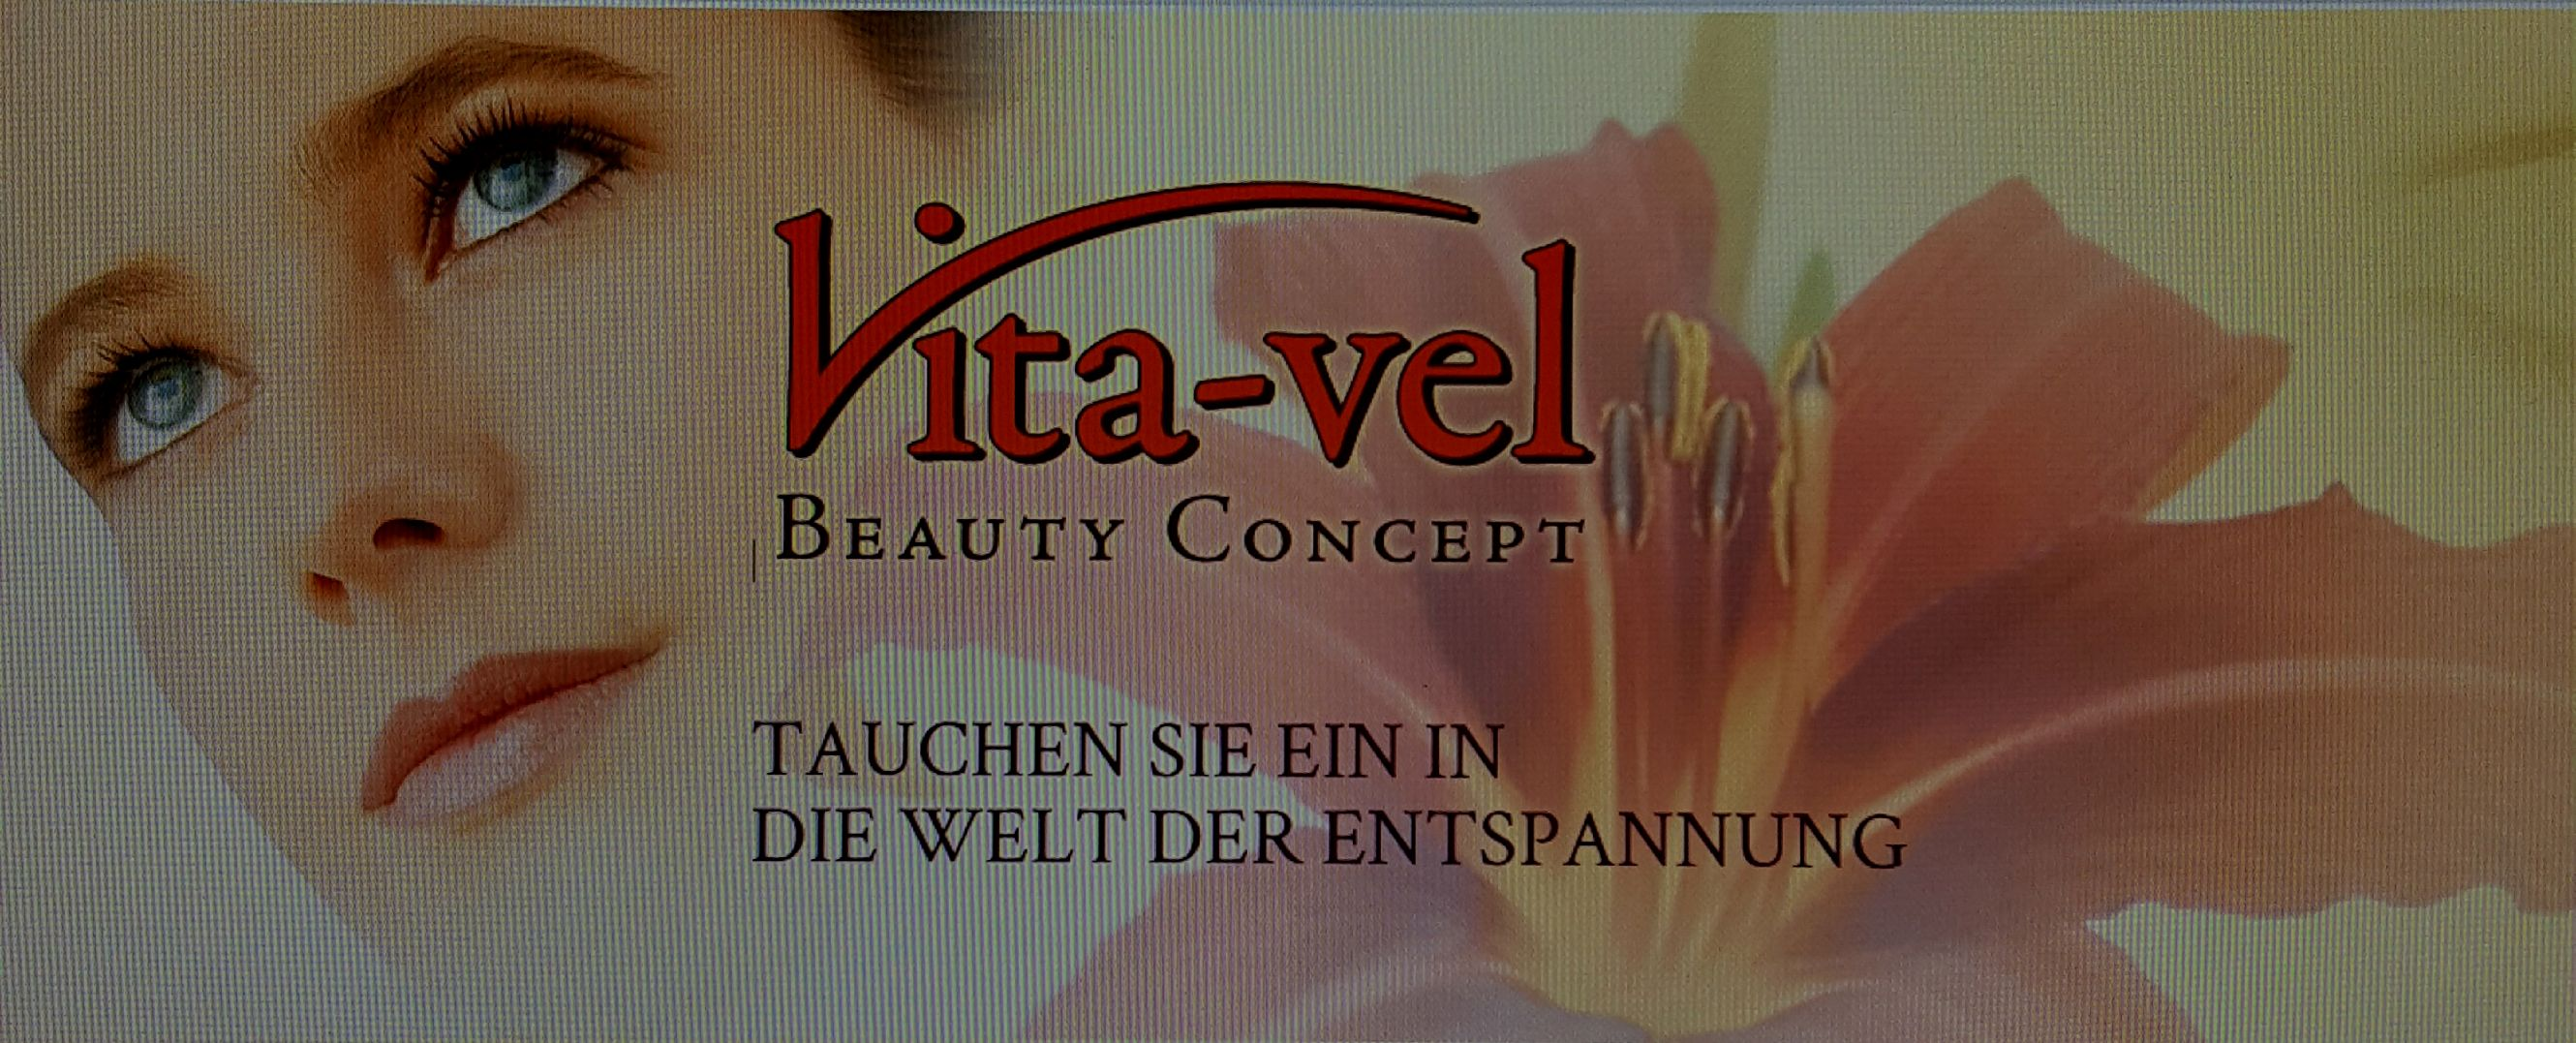 Vita-vel Beauty Concept